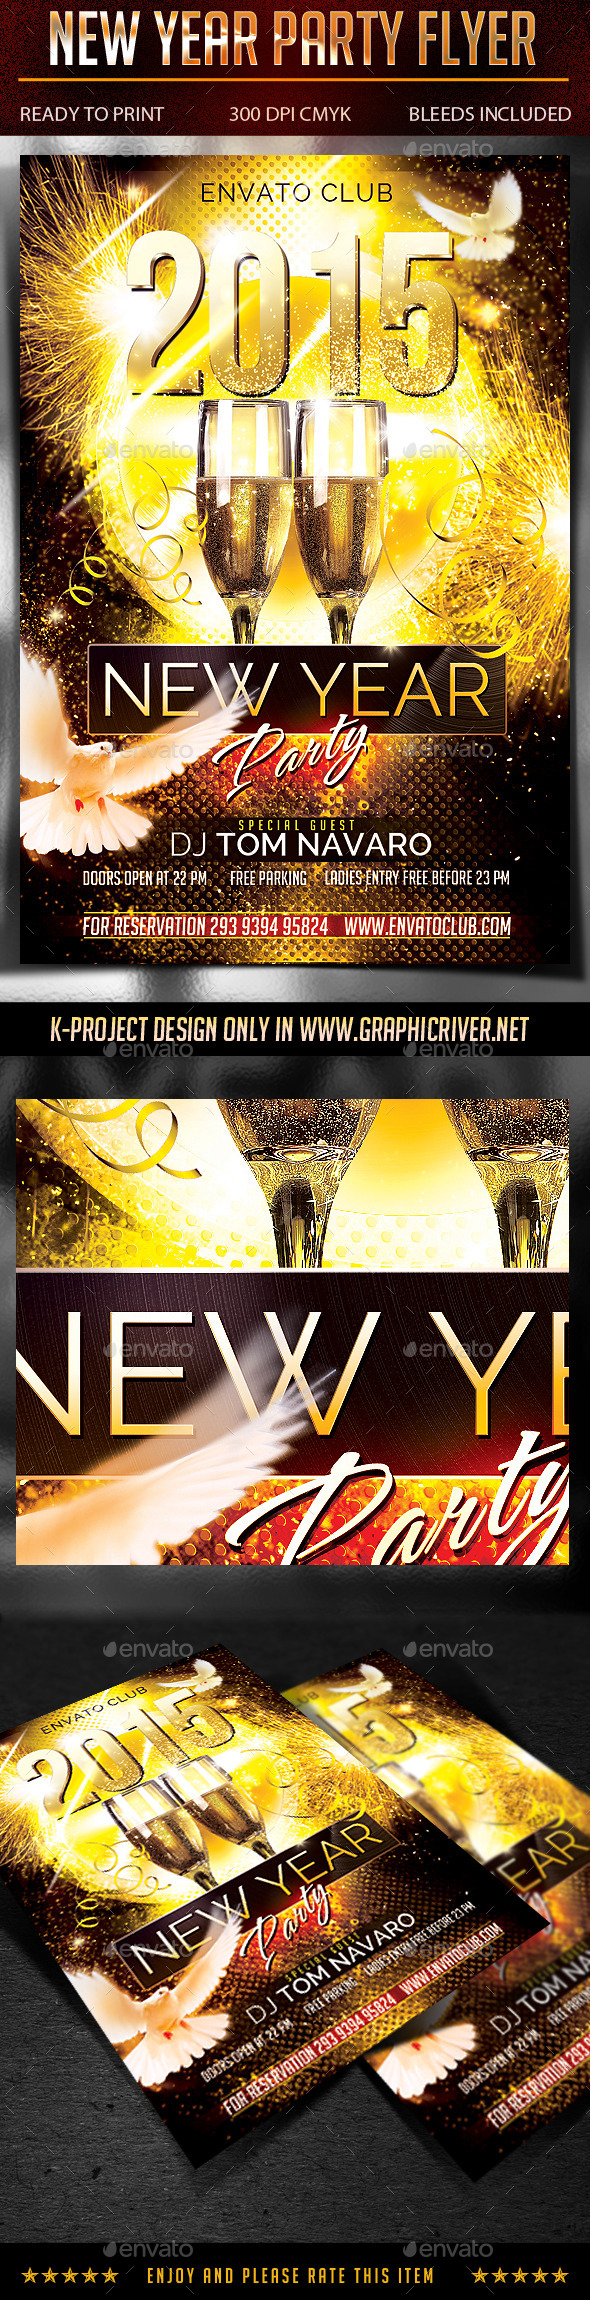 GraphicRiver New Year Party Flyer 9328560